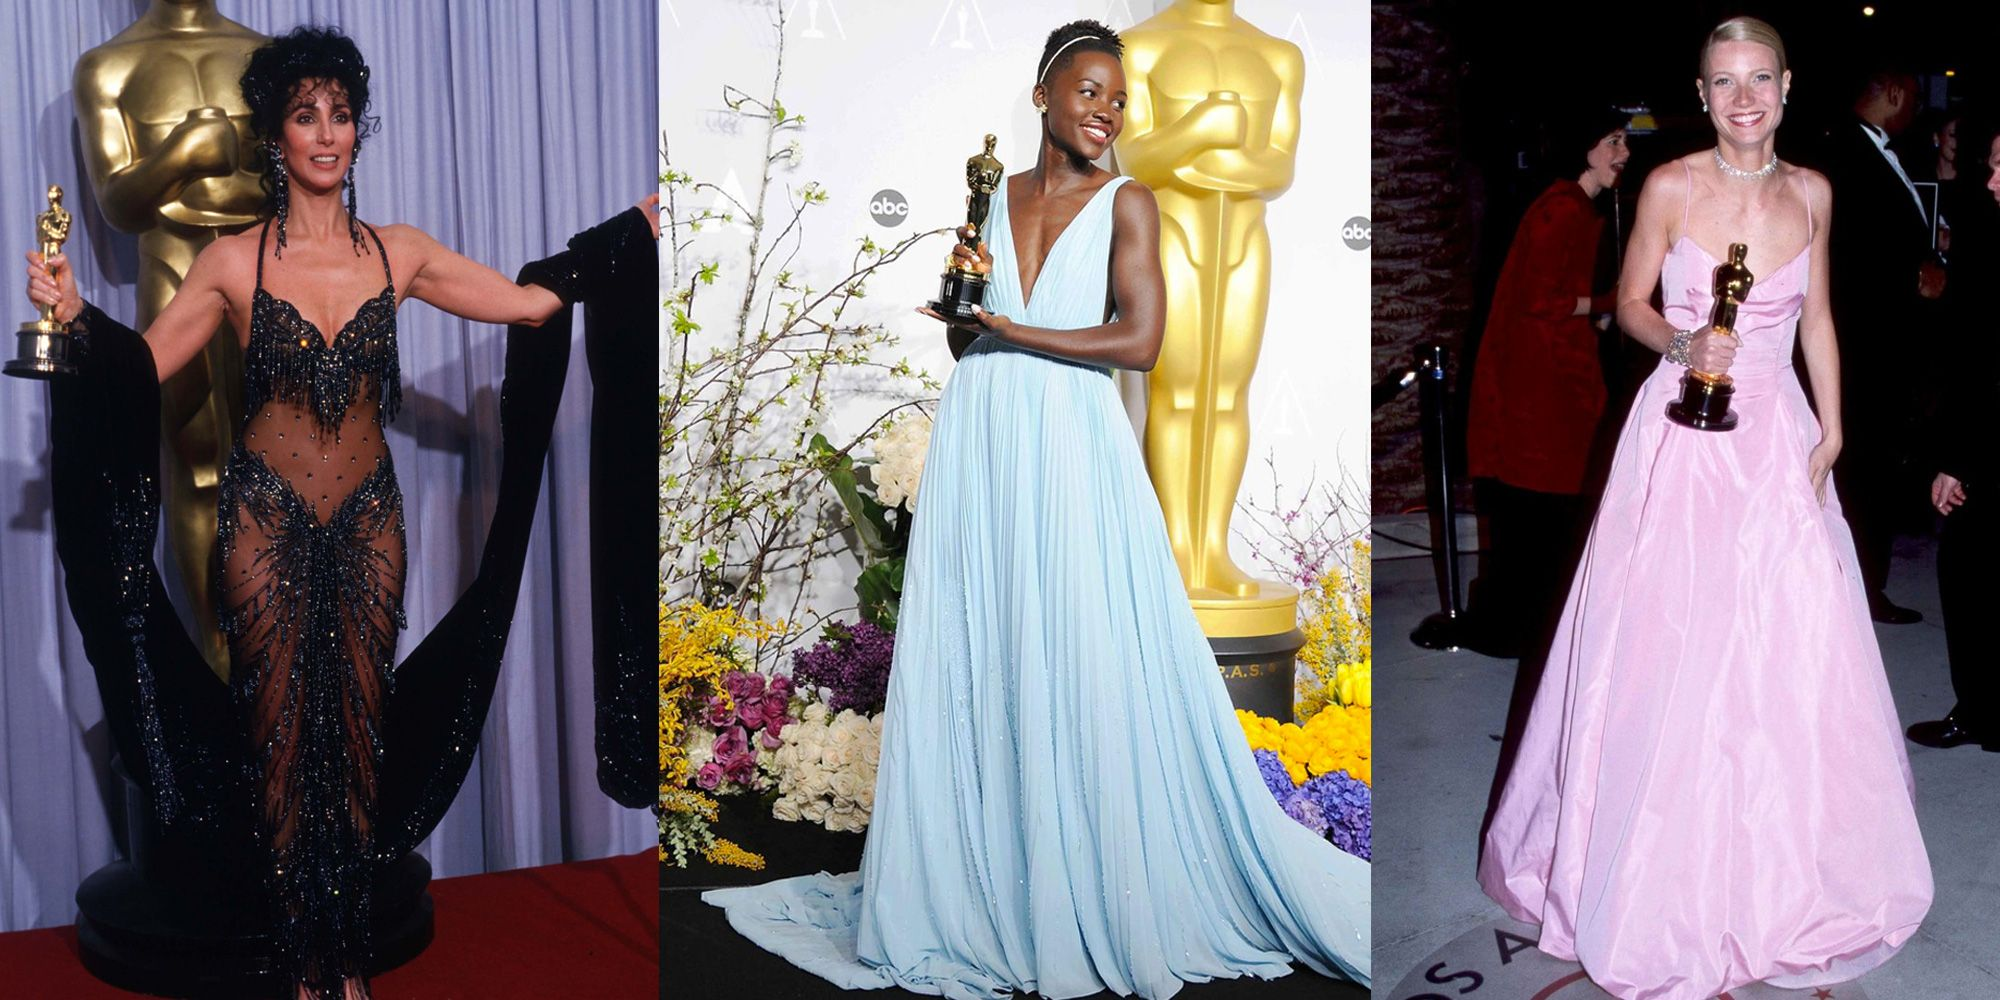 From timeless Hollywood glamour to over-the-top headline grabbers, our favorite Oscar moments almost always happen on the red carpet. On Sunday, February 24, we'll see who takes home the gold statues at the 91th Oscar ceremony, but which gown will top our style list this year?